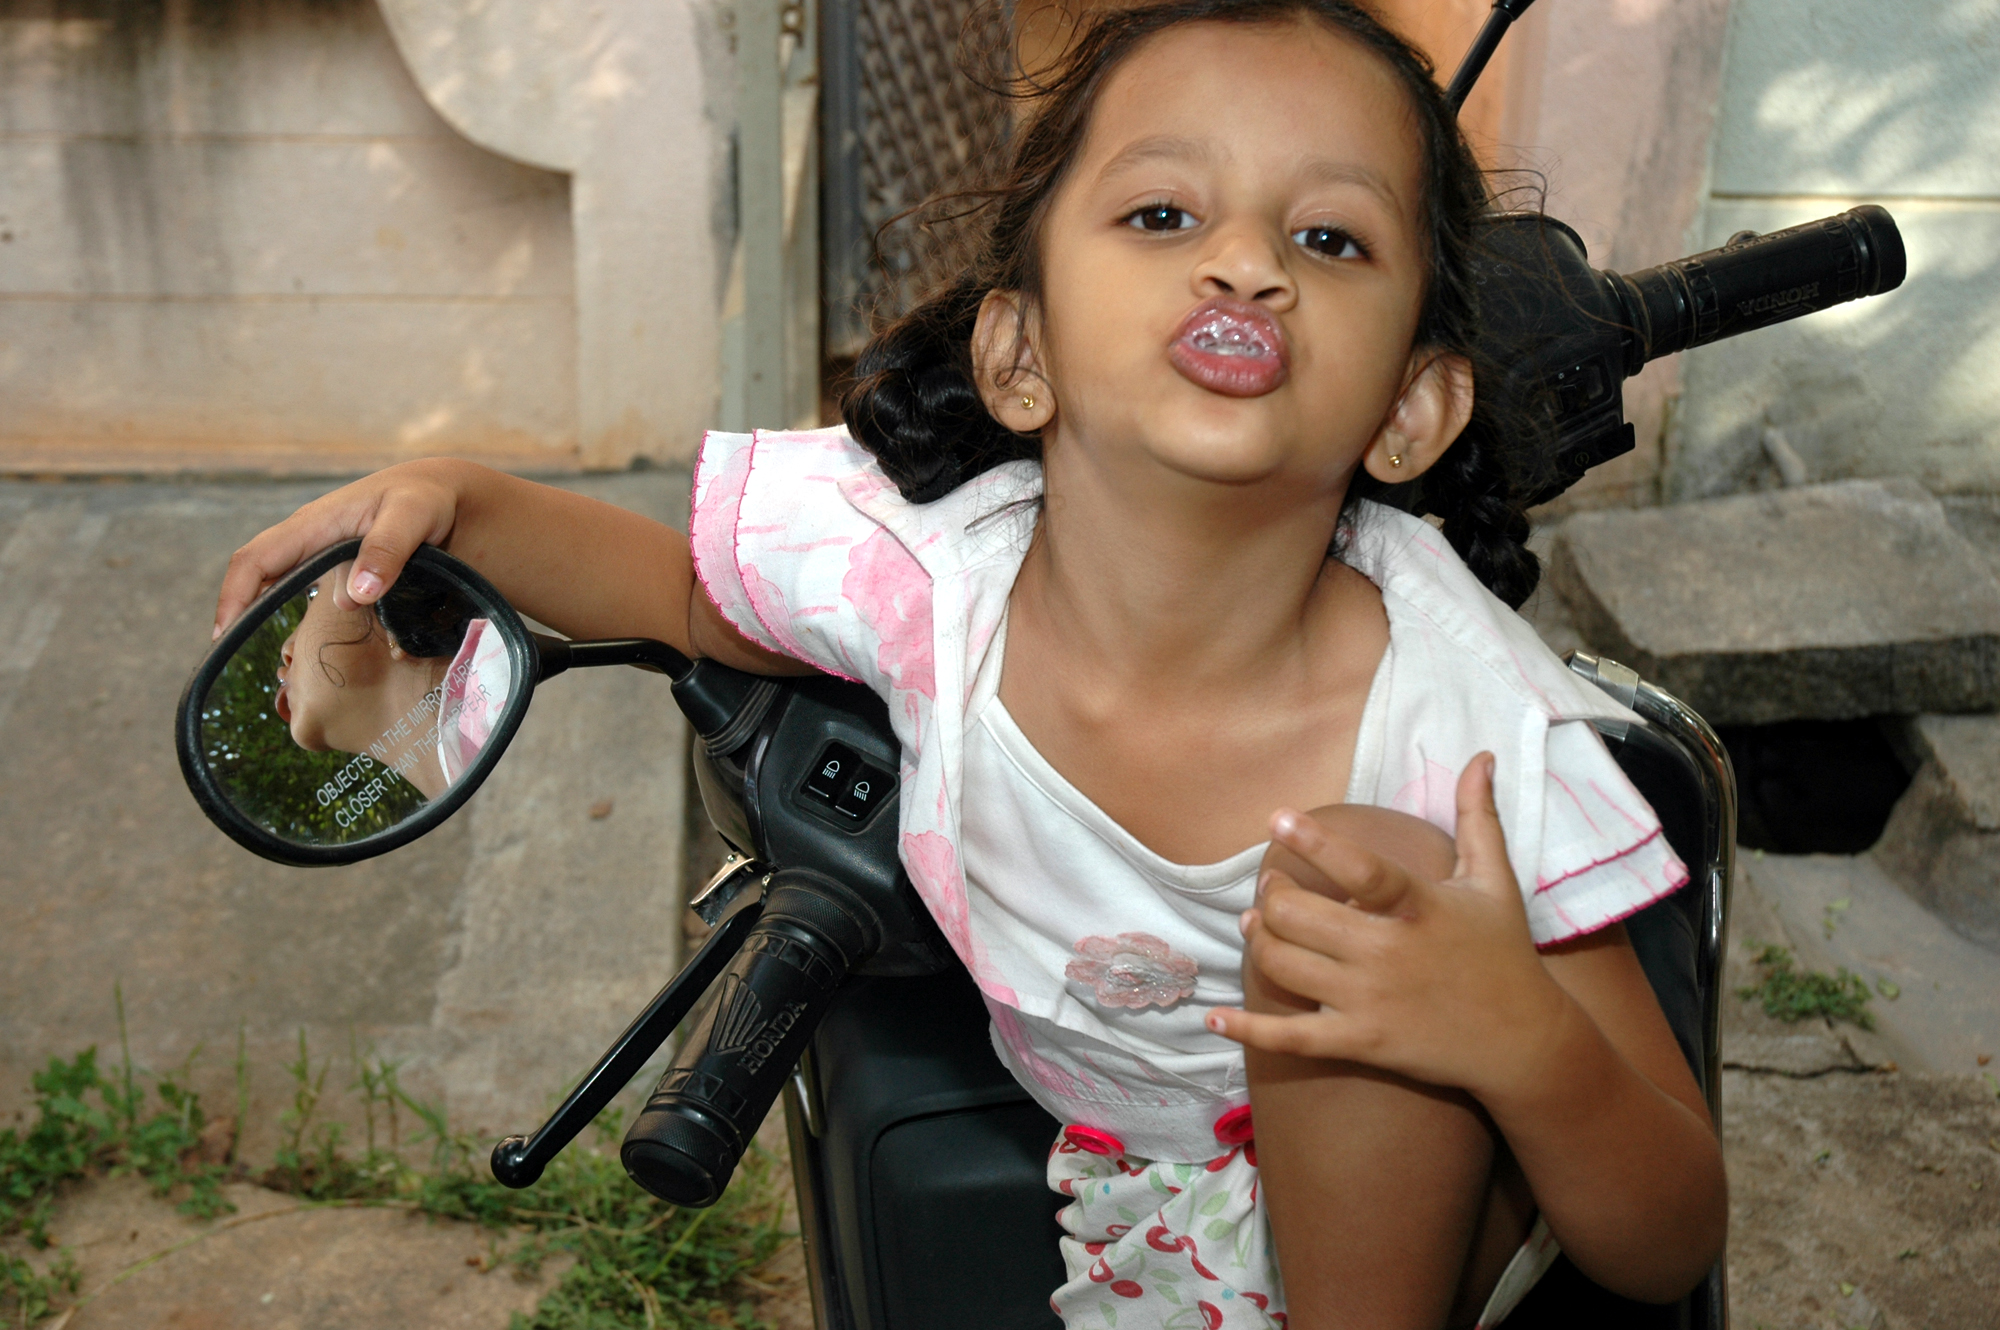 Kid playing reflected in the rear view mirror of the two wheeler on which she is sitting